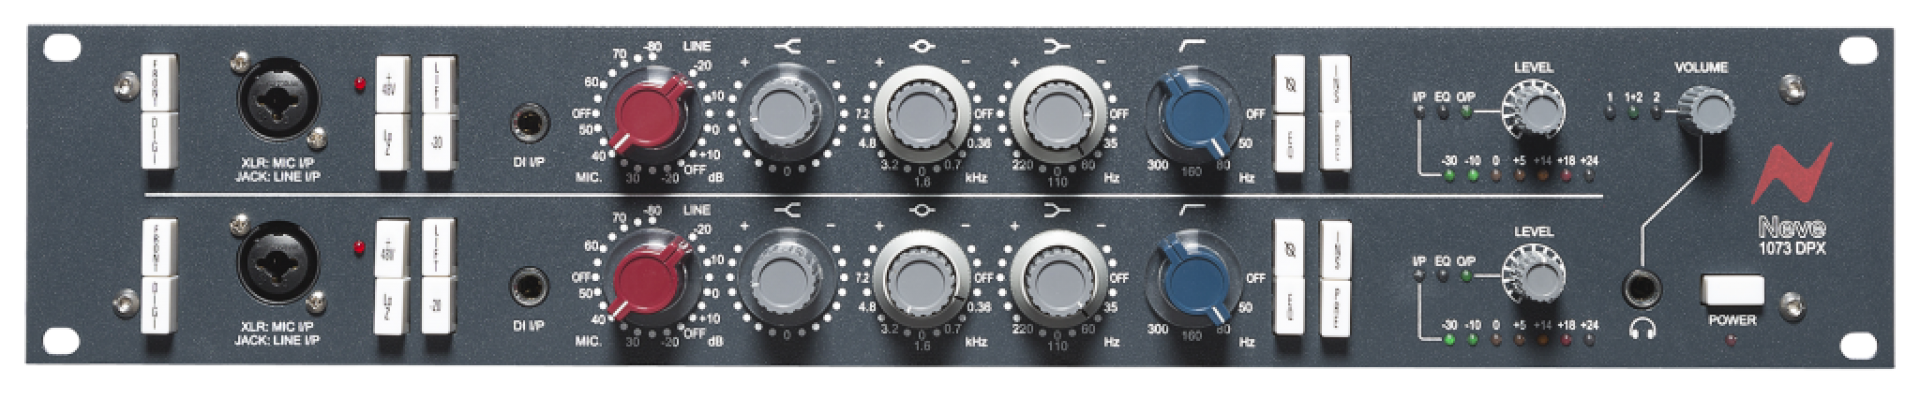 AMS Neve 1073 DPX